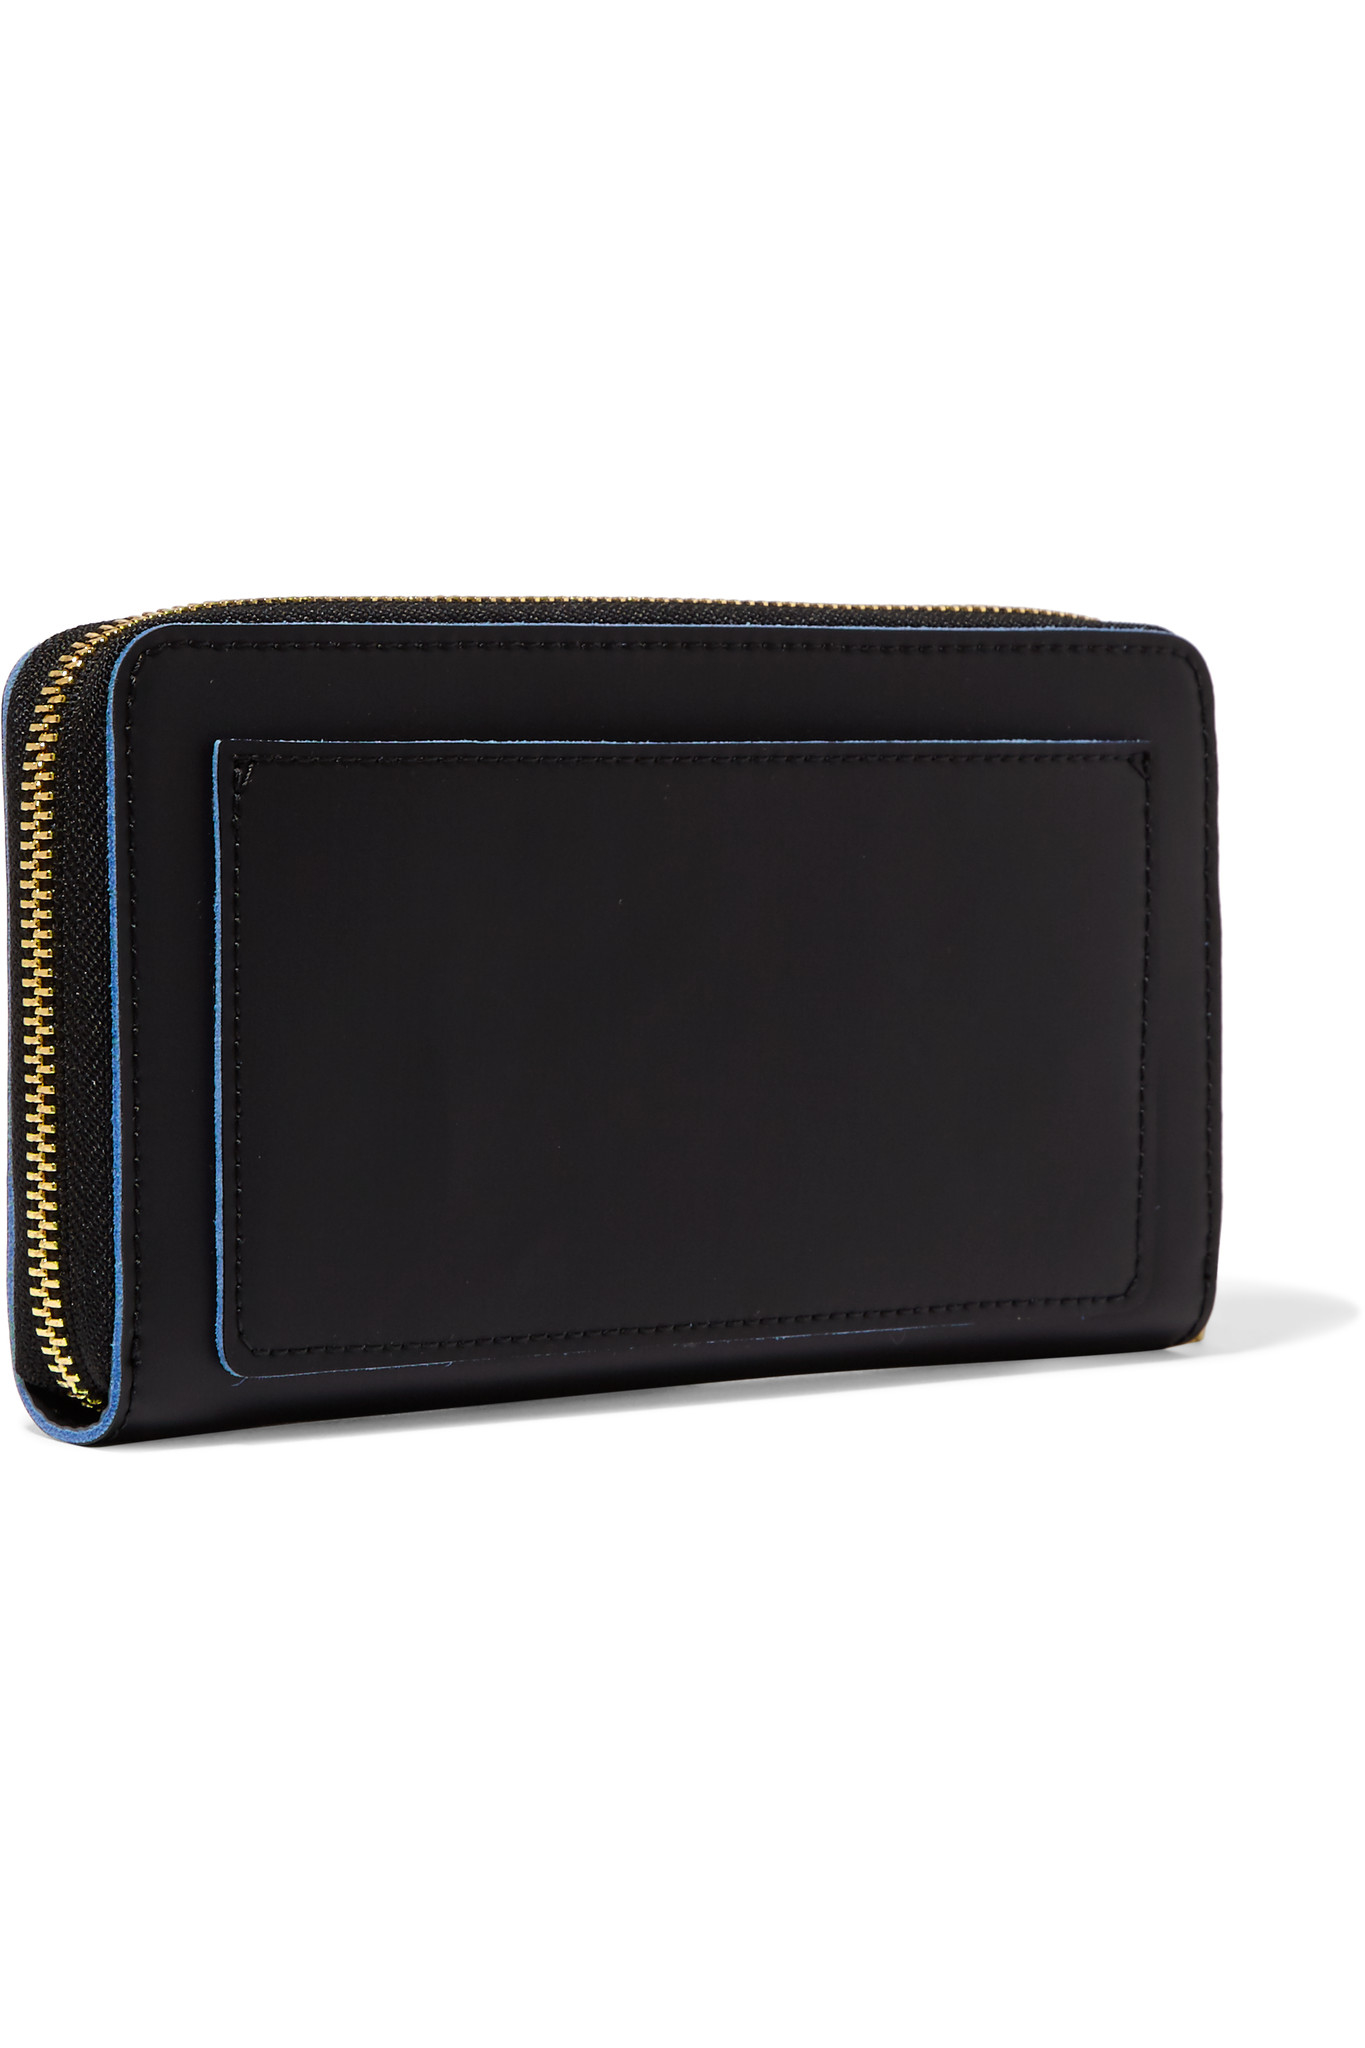 Dkny Quilted Leather Wallet Clutch in Black | Lyst |Dkny Wallet